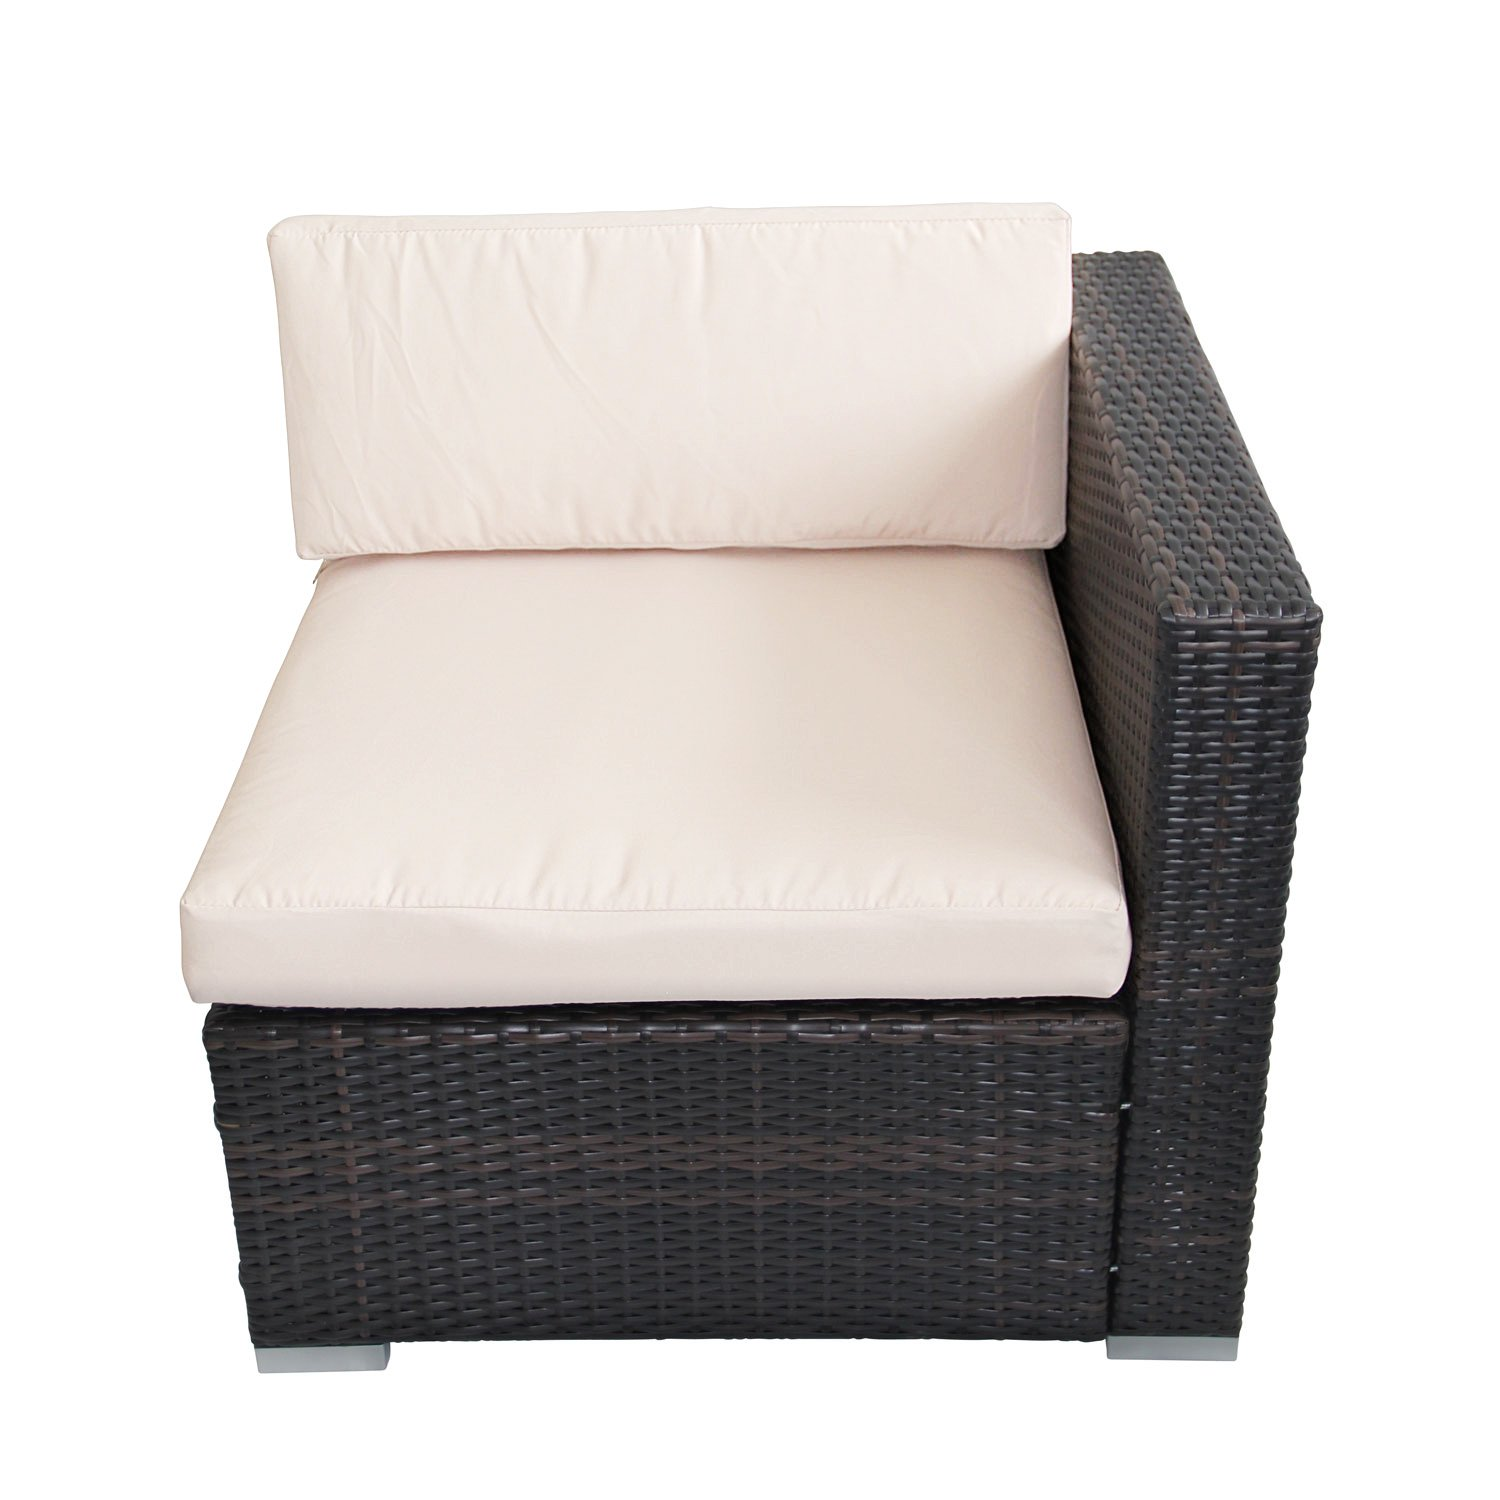 Outsunny Rattan Garden Wicker Patio Furniture Cushion Cover Sofa Cover  Replacement: Amazon.co.uk: Garden U0026 Outdoors